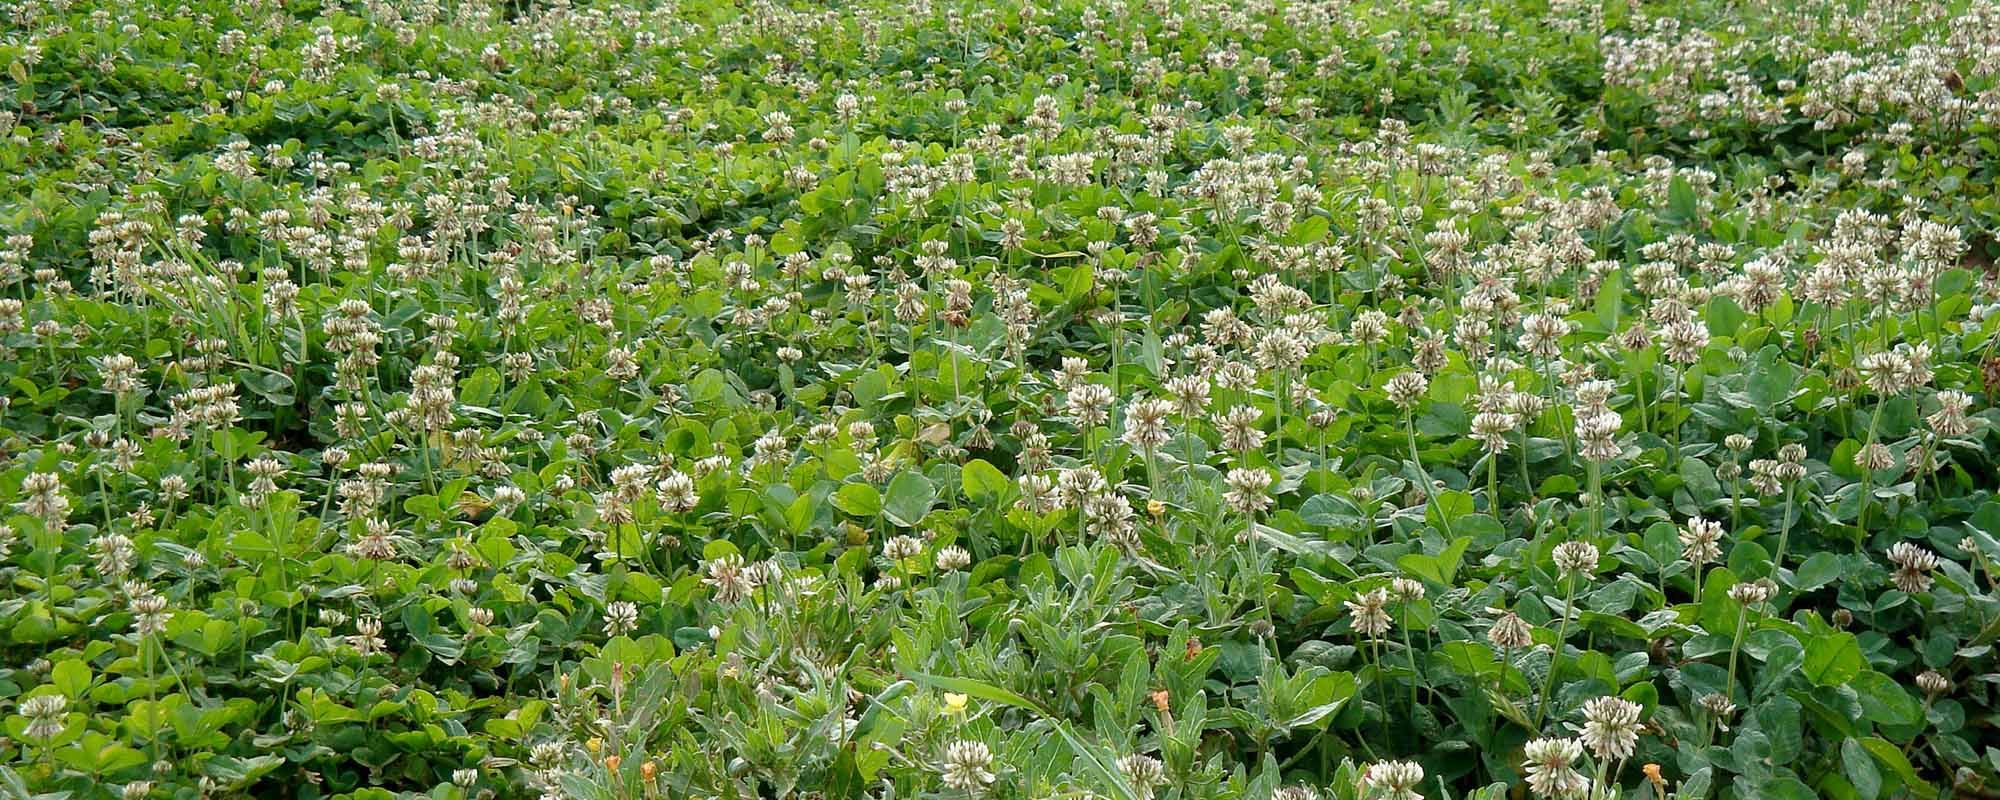 New White Clover Variety Developed Released To Market